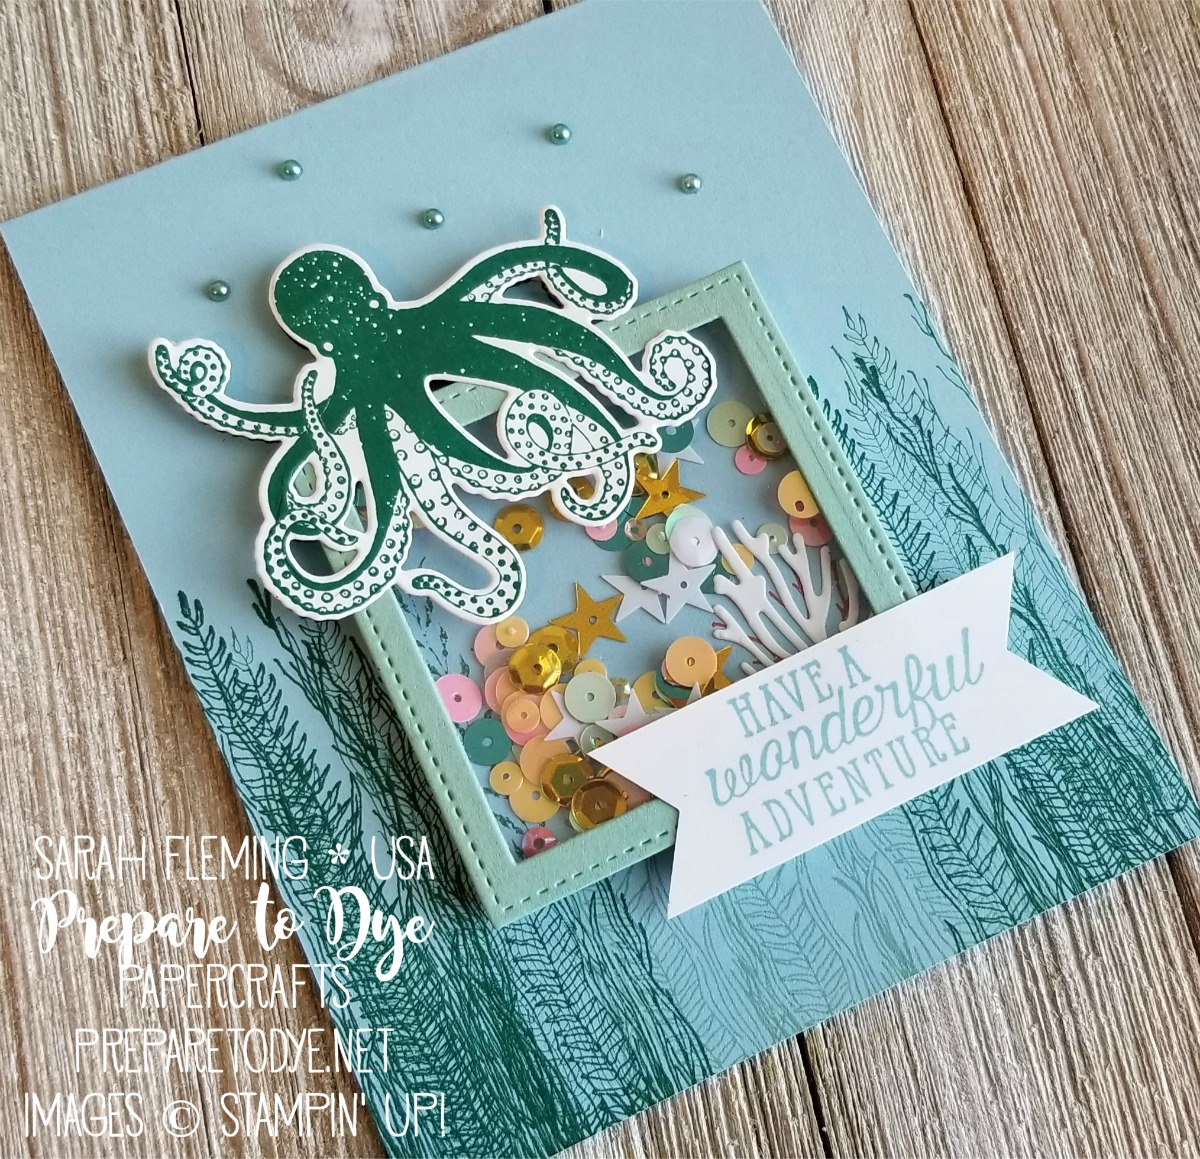 Stampin' Up! Sea of Textures and Magical Mermaid card, Under the Sea framelits, Artisan Pearls, Stitched Shapes framelits - Sarah Fleming - Prepare to Dye Papercrafts #SIP156